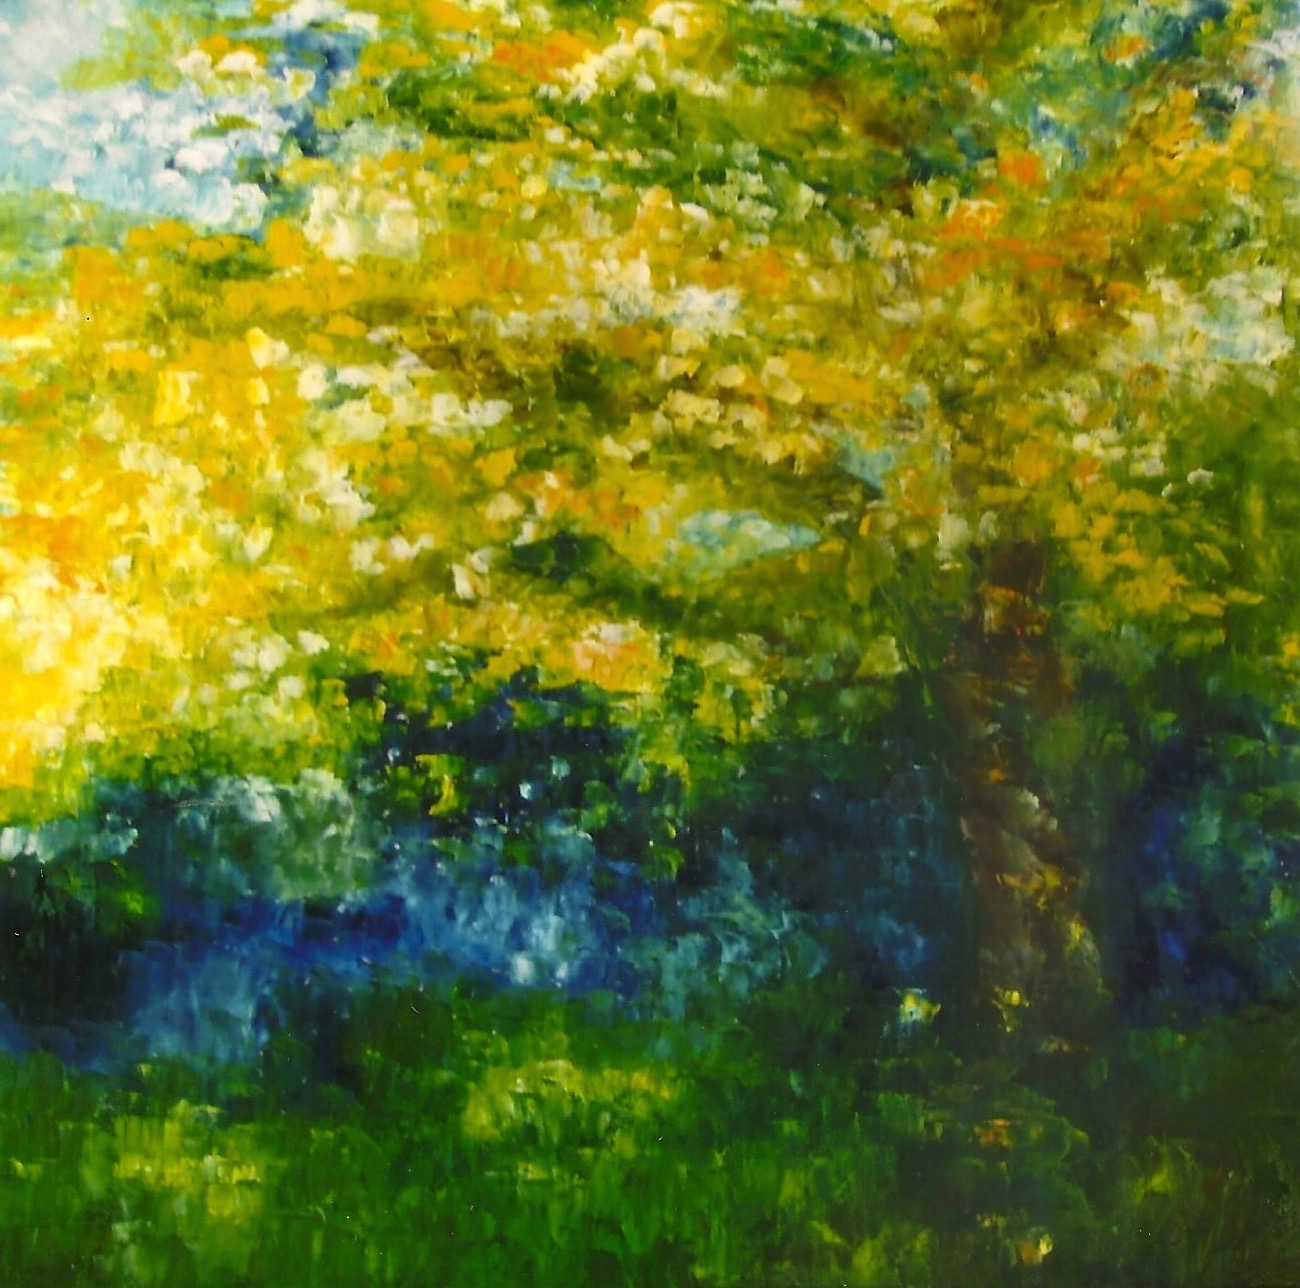 Oak Tree by The River  36x36 Oil on Canvas(sold)